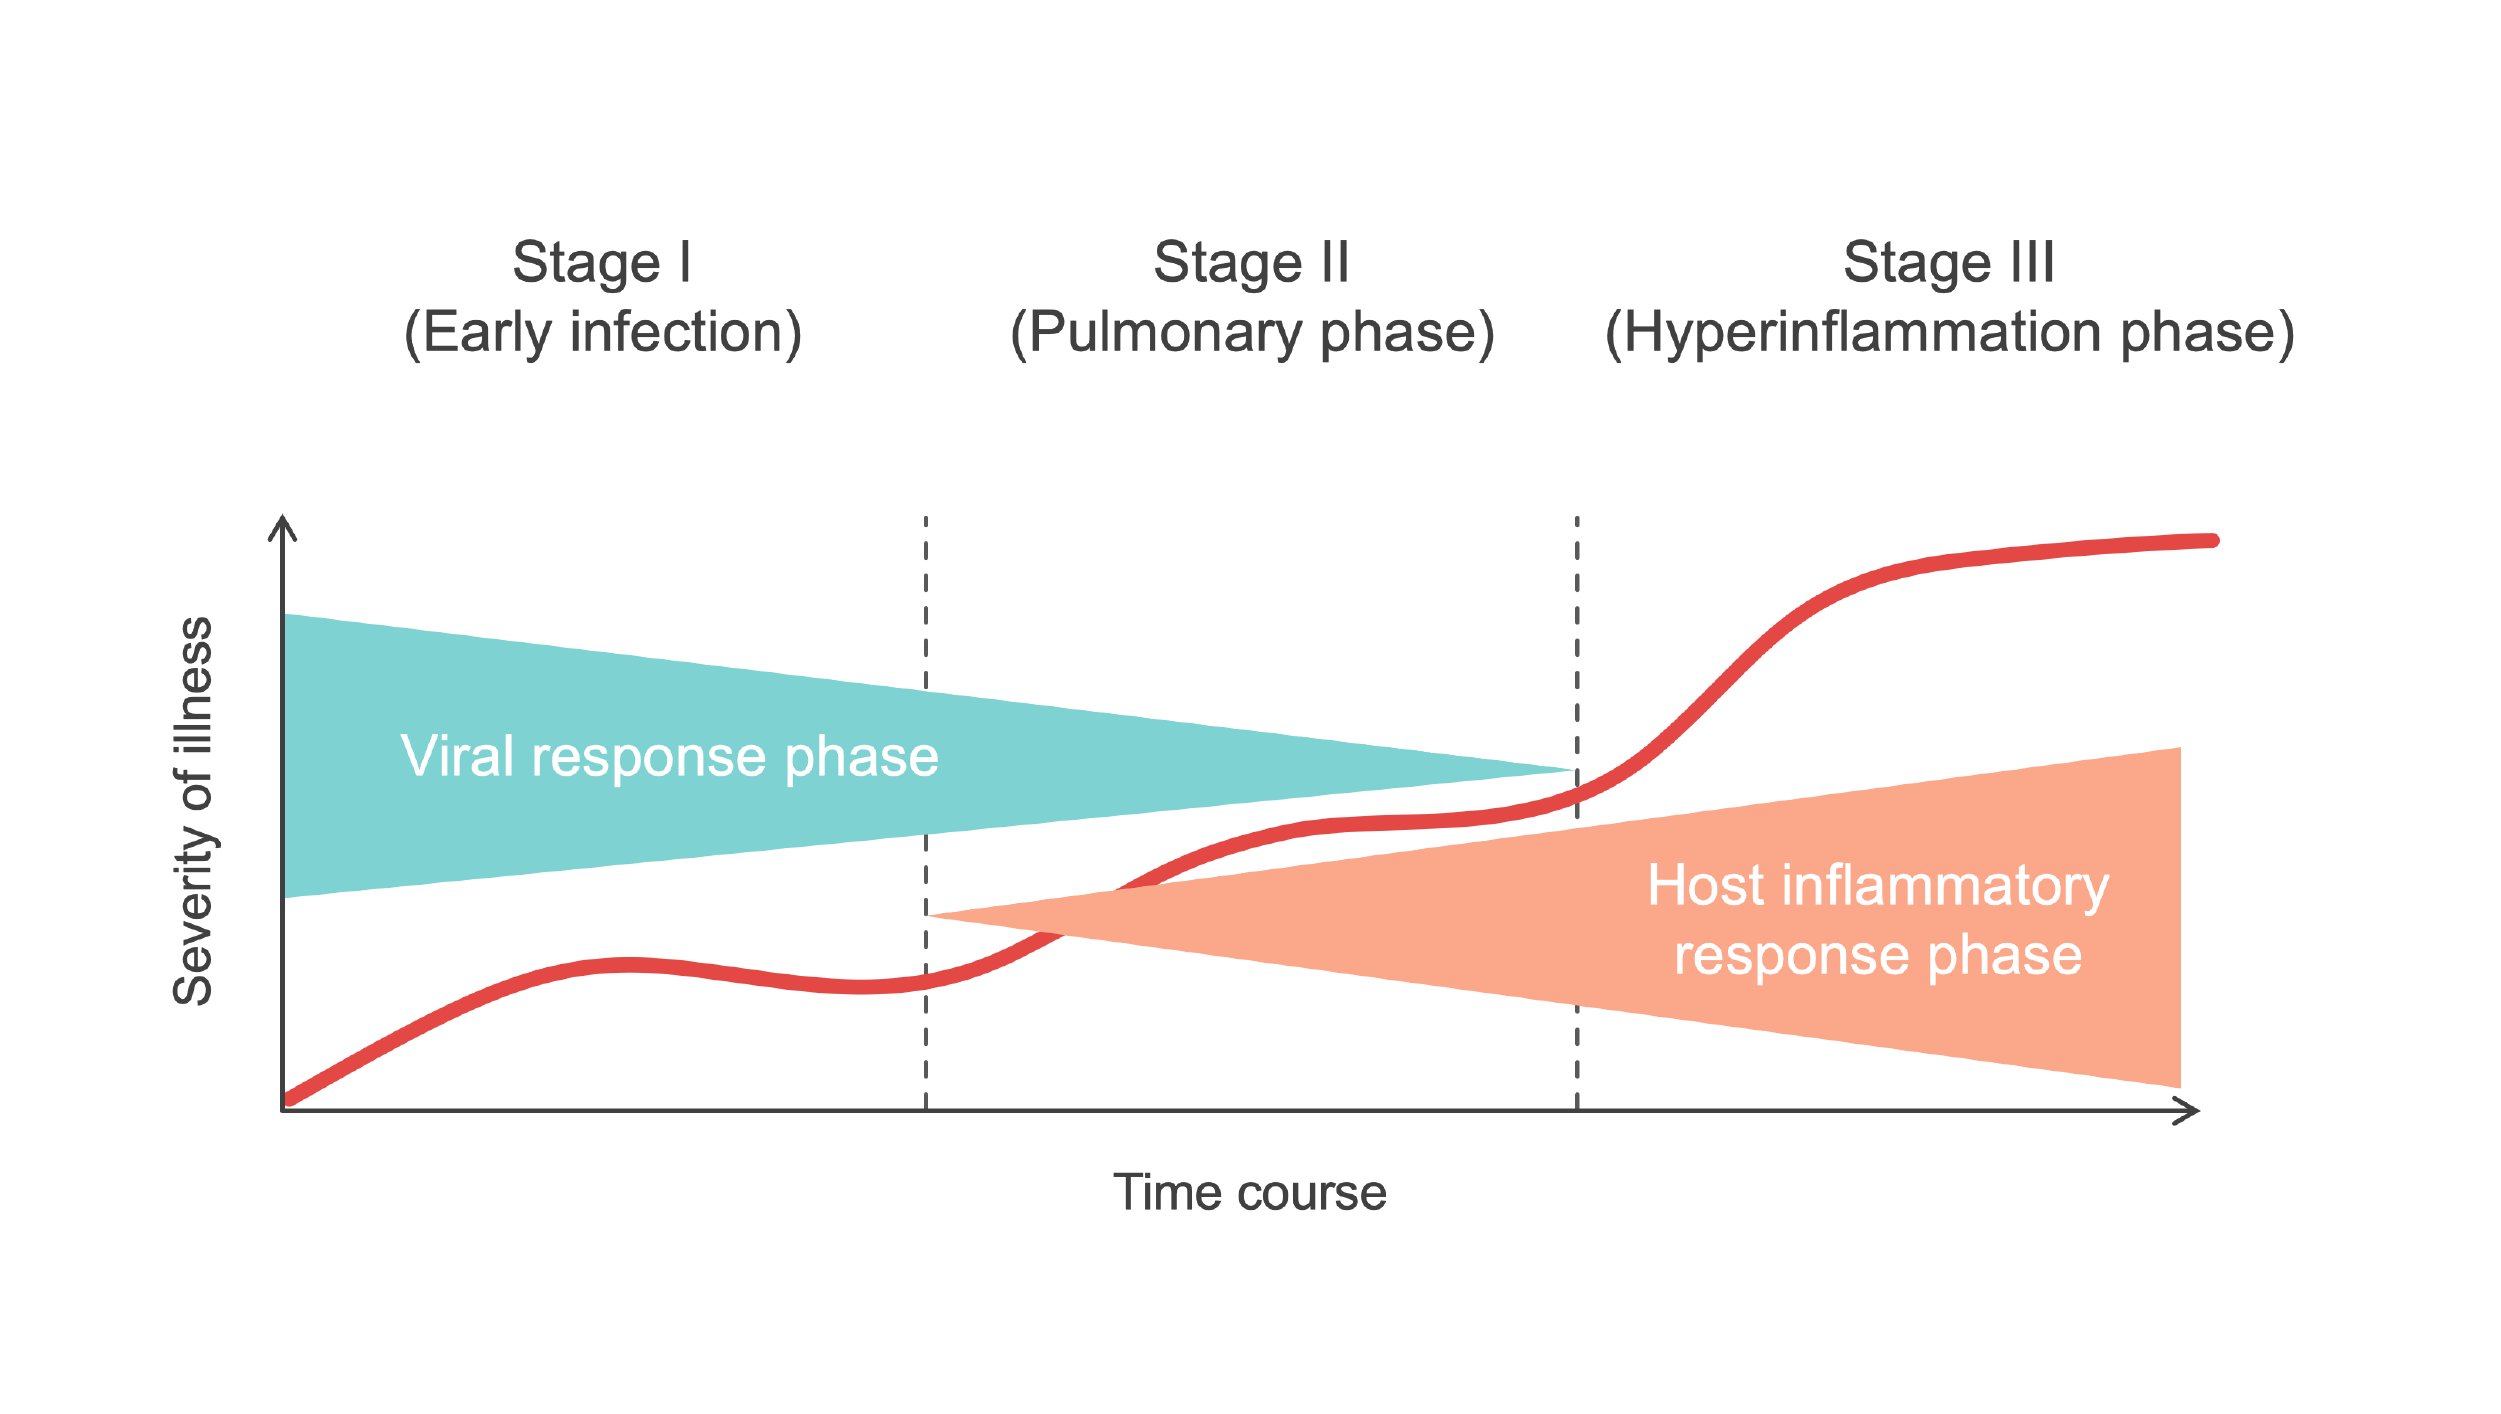 Graph showing the stages of COVID-19 infection over time, divided into three stages of increasing severity.